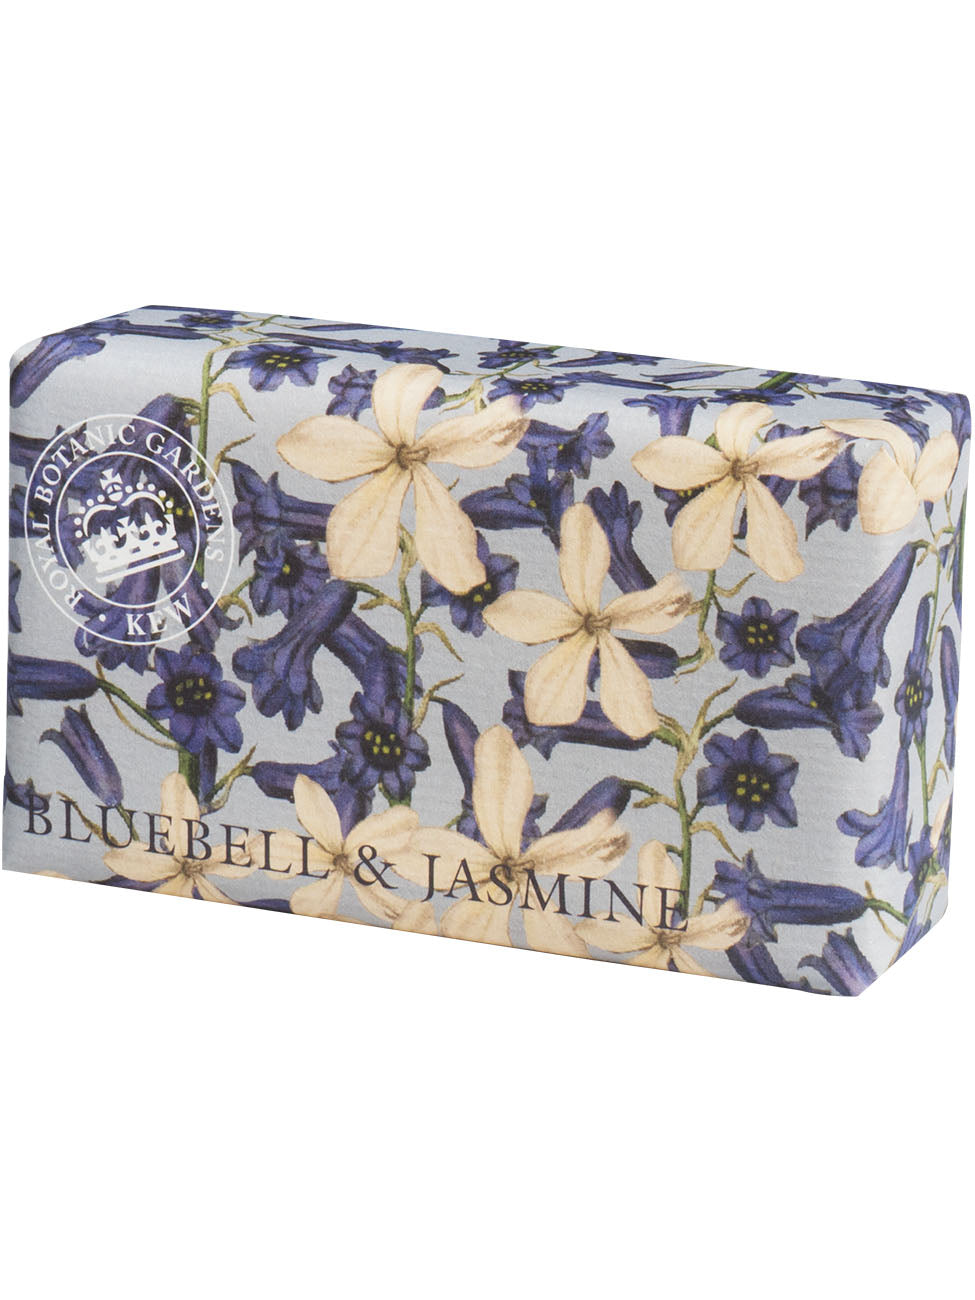 Royal Kew Gardens - Bluebell & Jasmine Soap